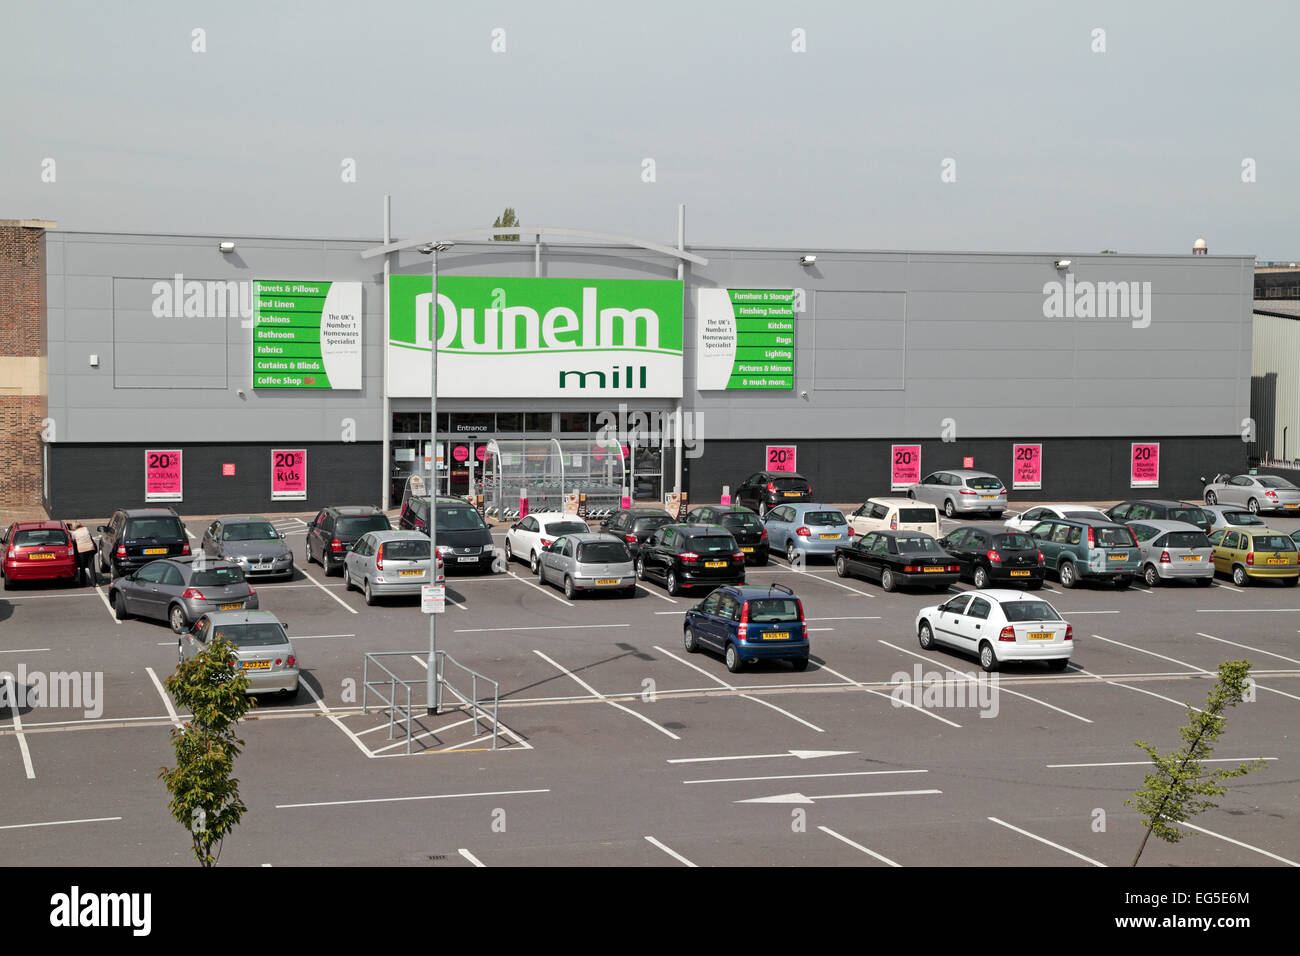 Dunelm Mill Kitchen Curtains The Dunelm Mill Home Furnishings Store In Greenford West London